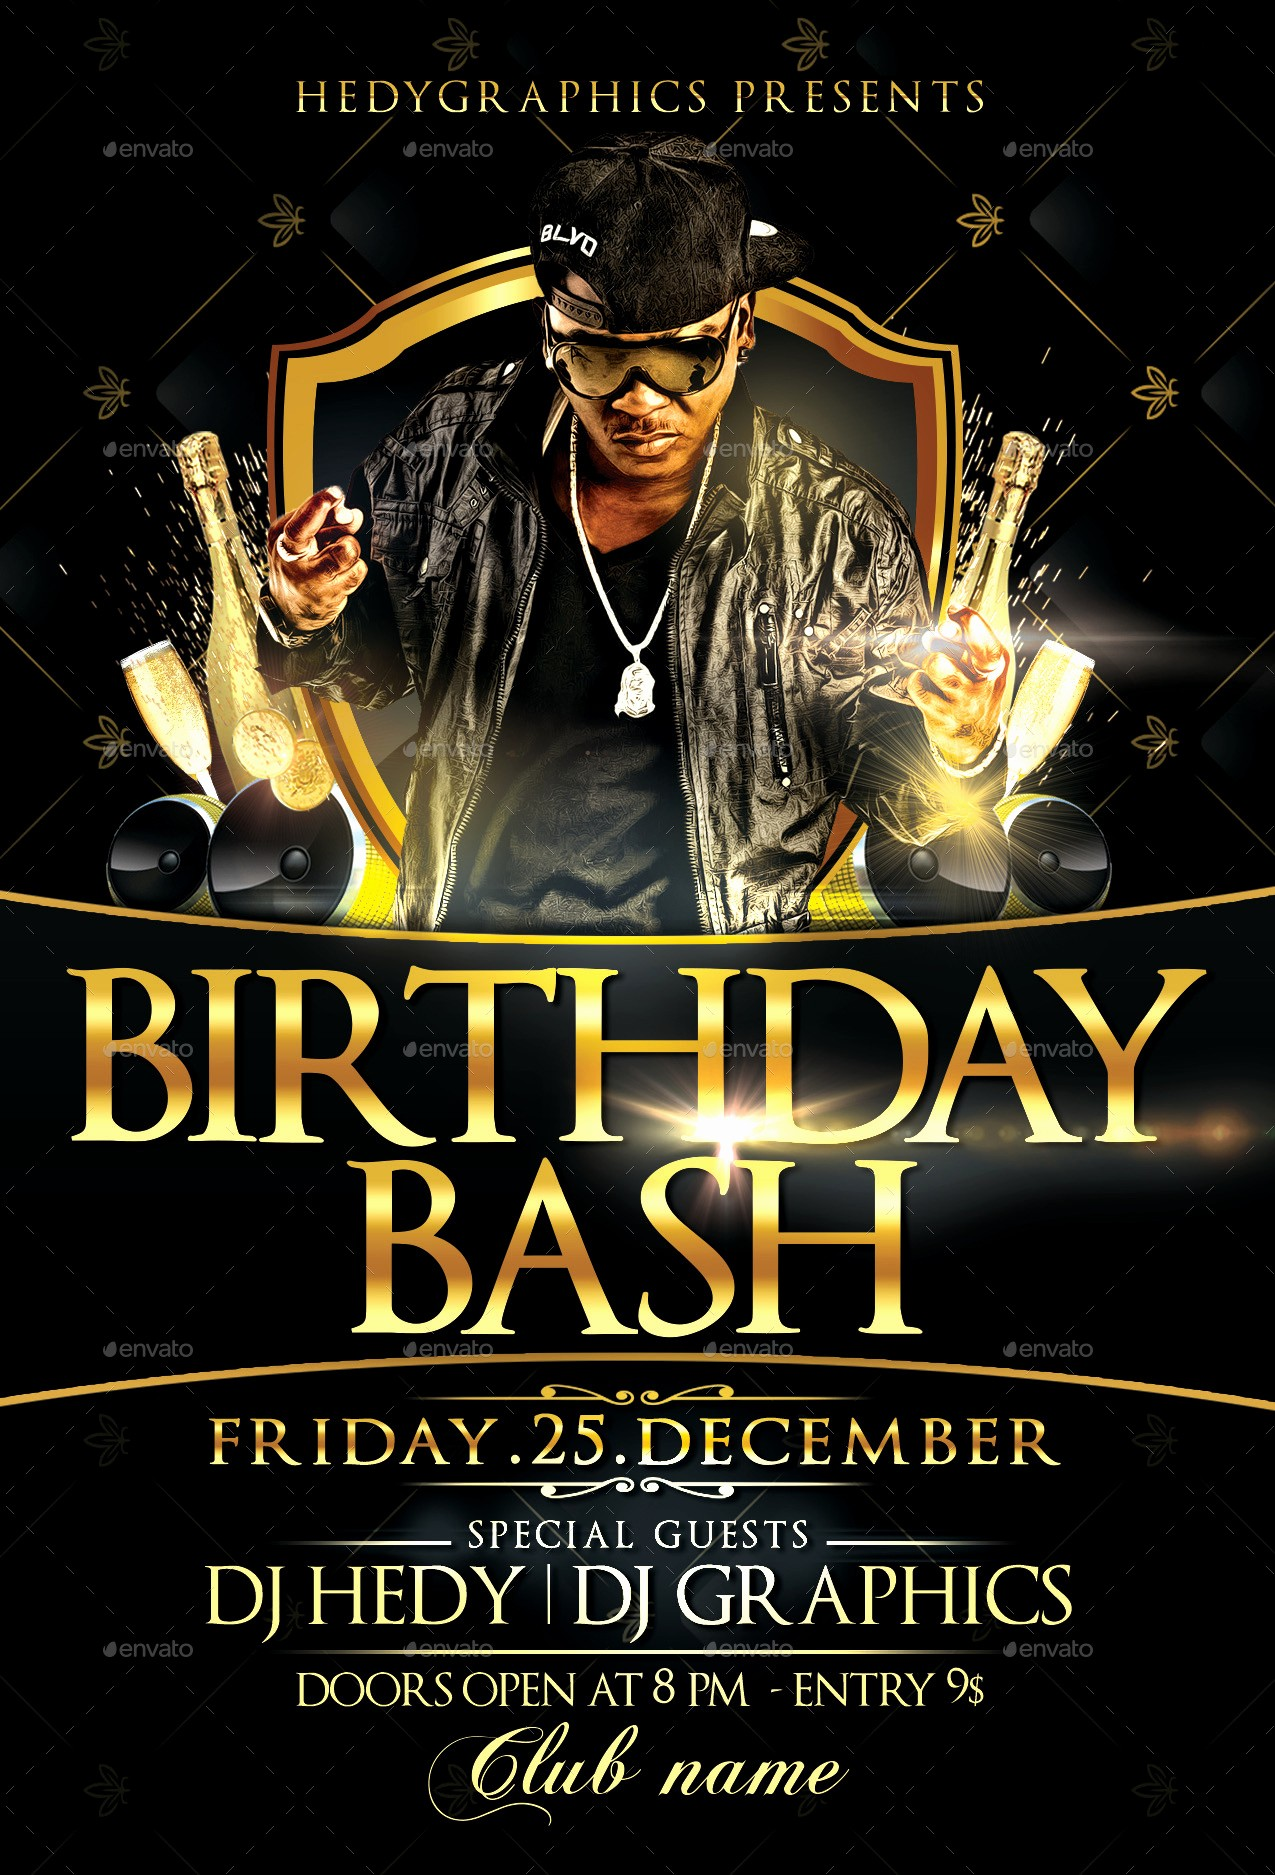 Birthday Party Flyers Designs Free Luxury Birthday Bash Flyer Template by Hedygraphics